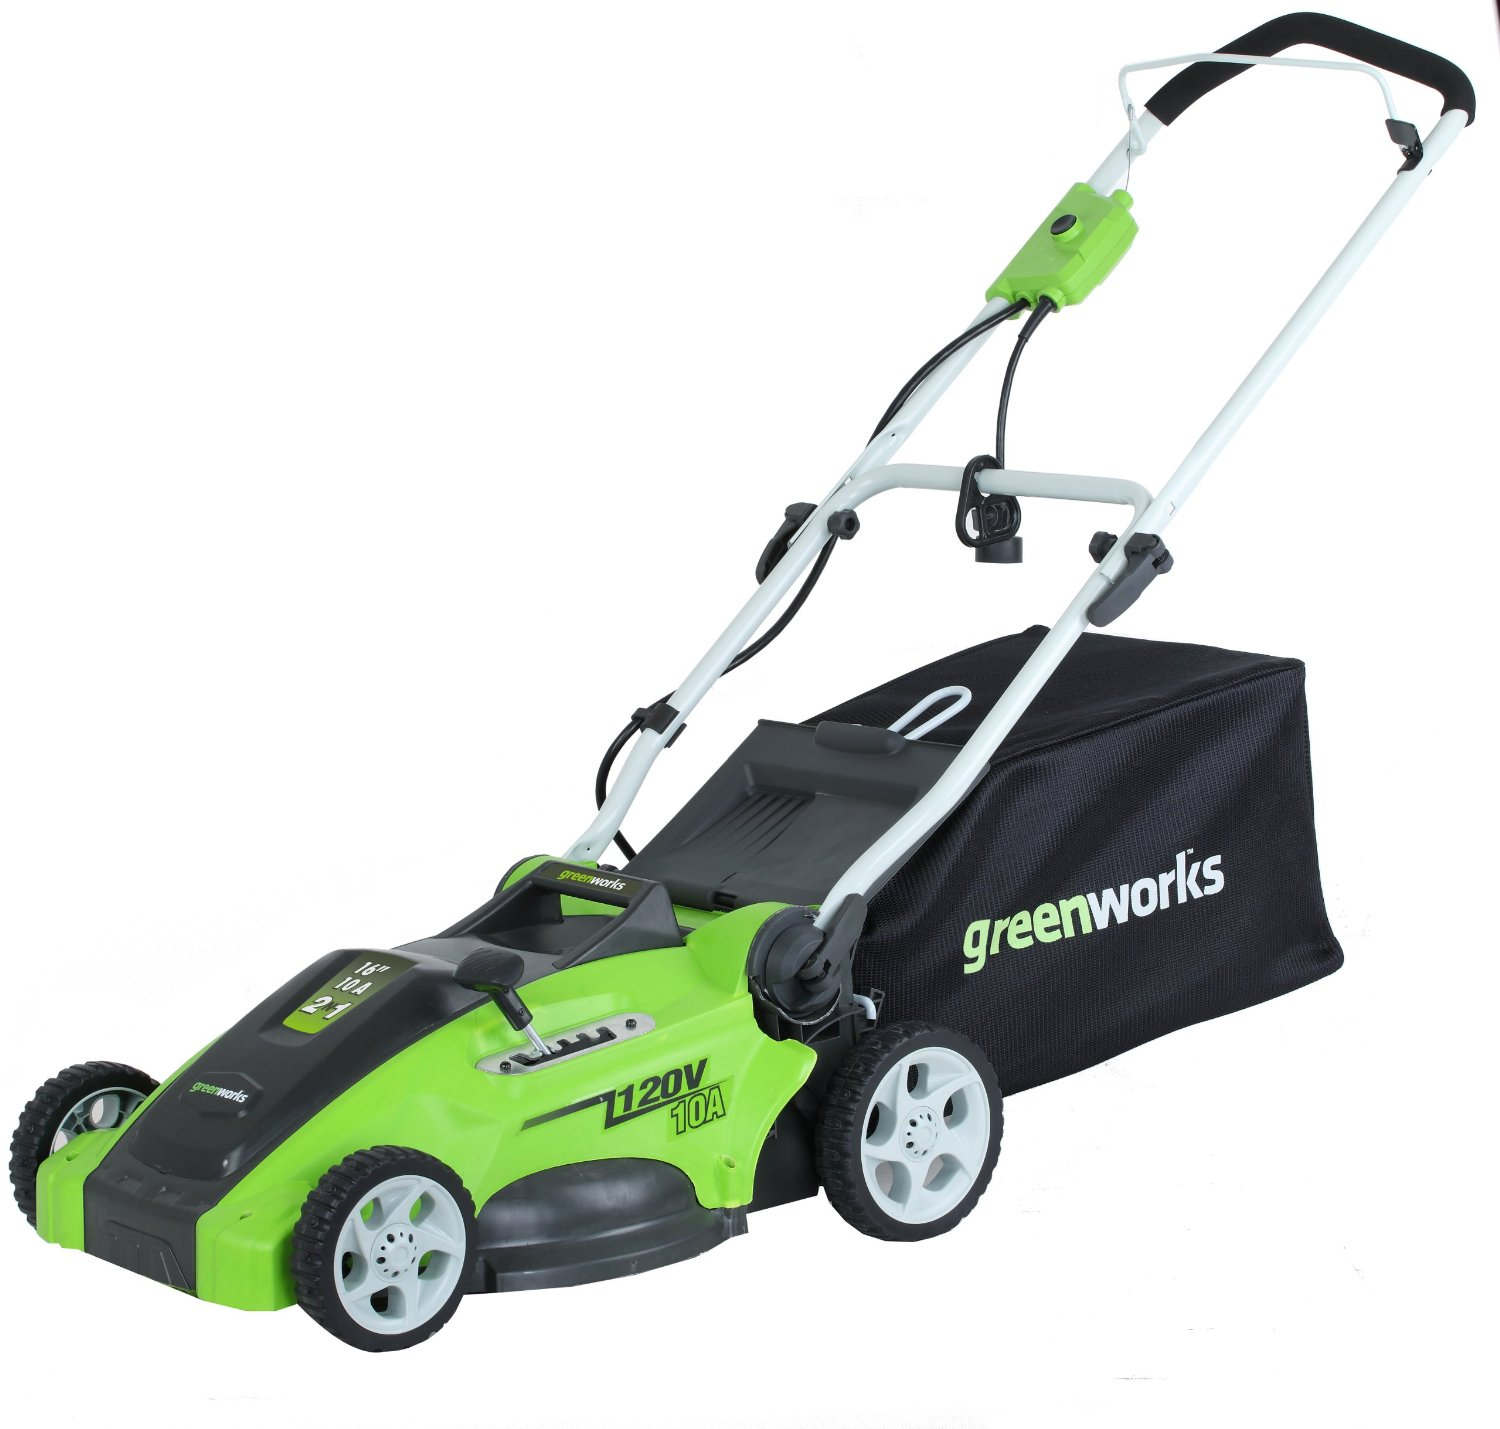 GreenWorks 25142 10 Amp Corded 16 Inch Lawn Mower - Reviews of Top 15 Mother's Day Gift Ideas for Active and Outdoorsy Moms